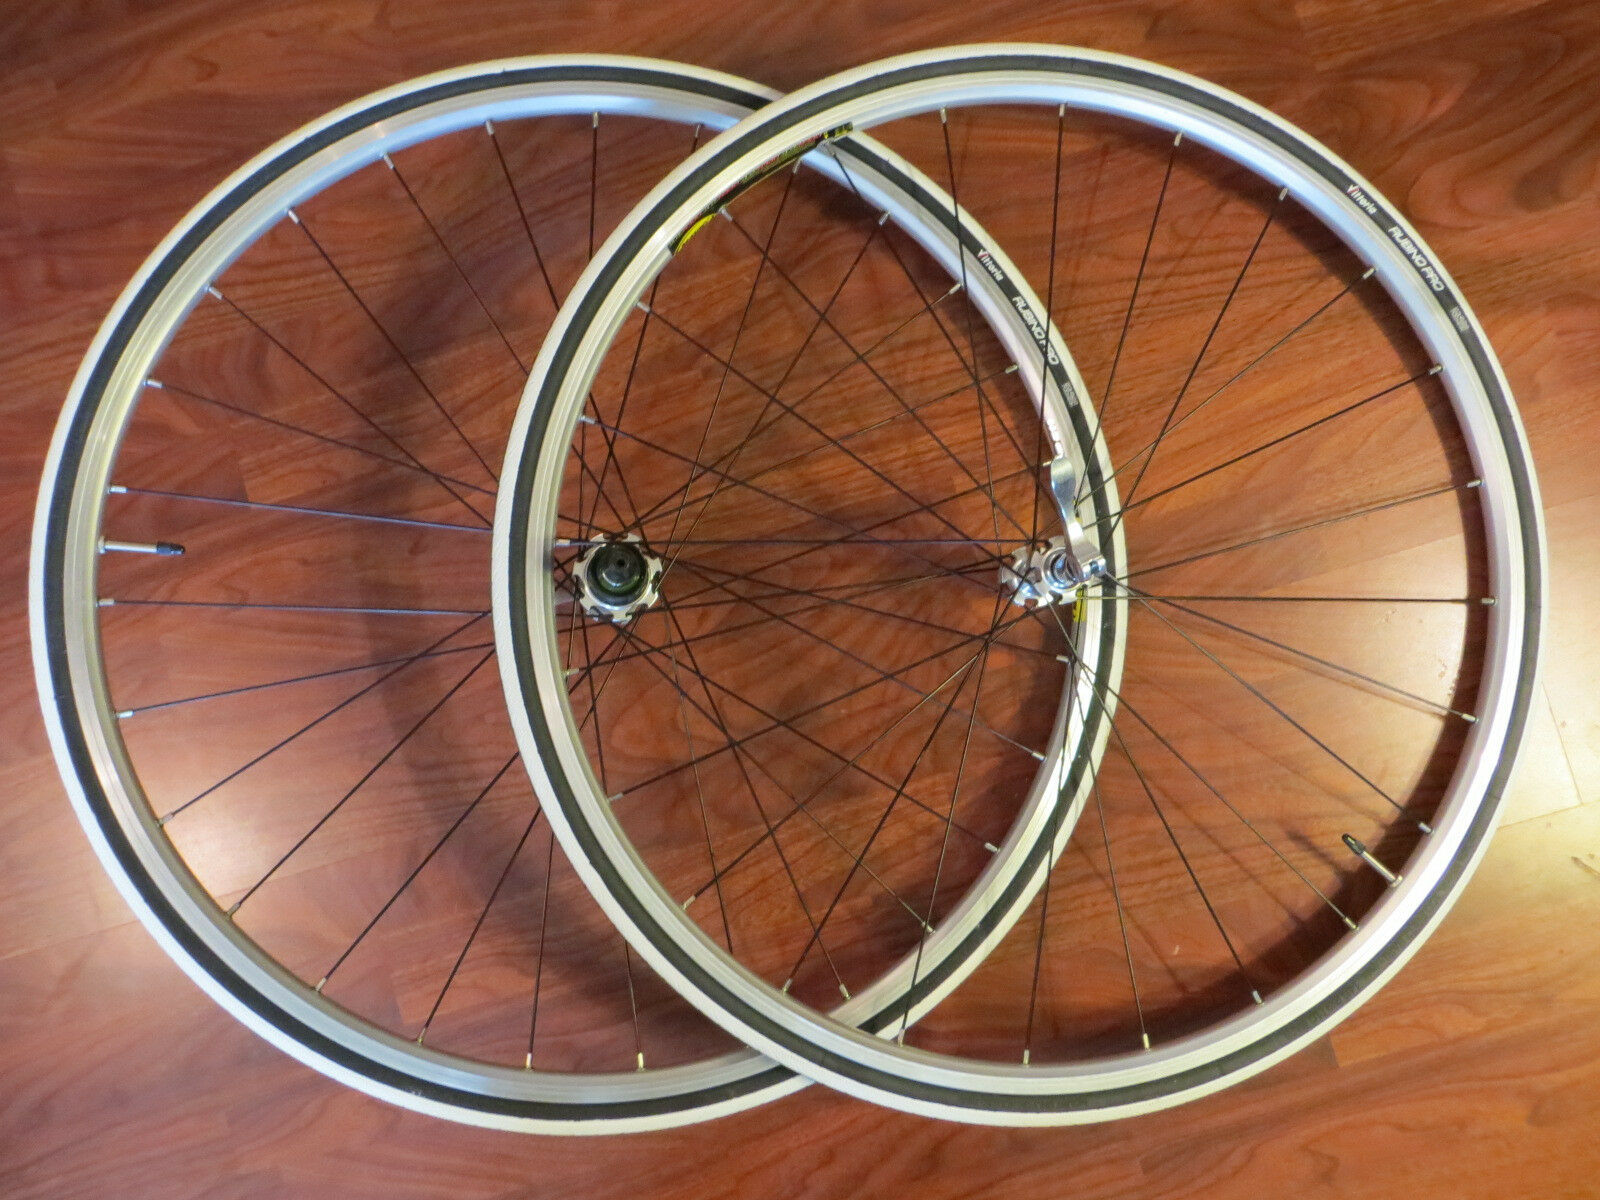 MAVIC OPEN SPORT 700C SPECIALIZED 10 SPEED  CLINCHER WHEEL SET VITTORIA PRO TIRES  high quality genuine